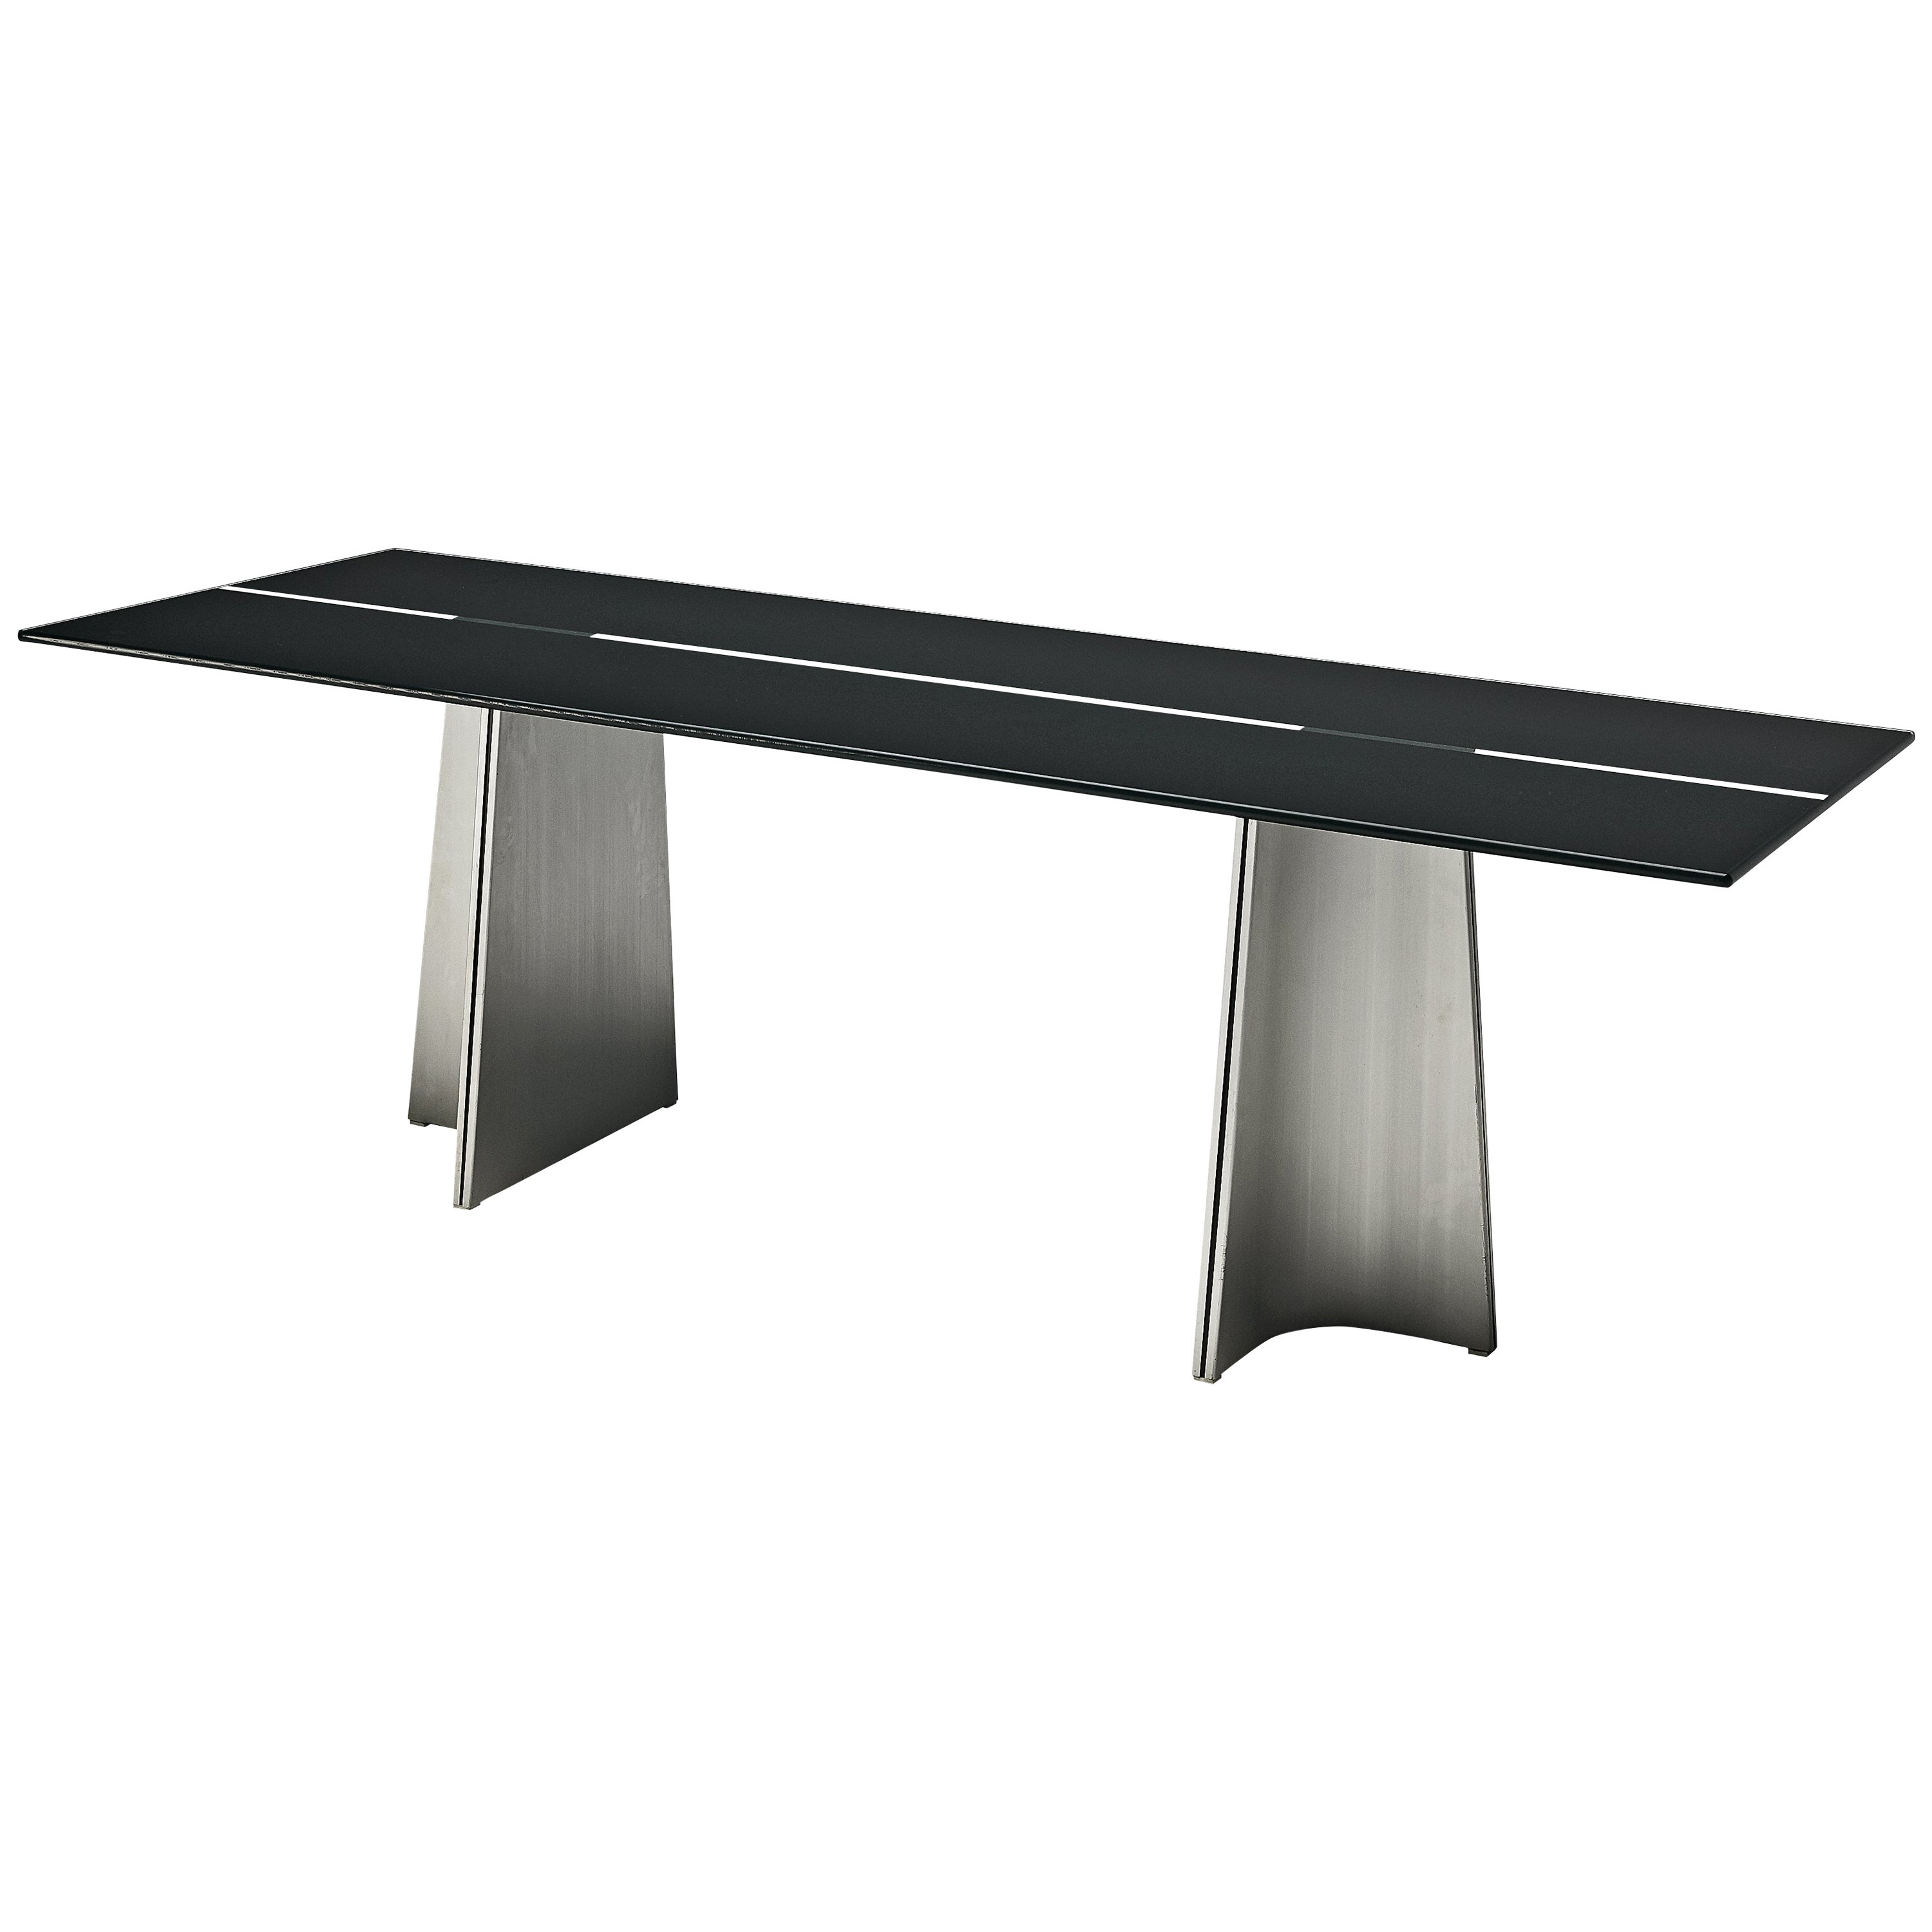 Postmodern Rectangular Dining Table 'Ufo' in Metal and Glass by Luigi Saccardo